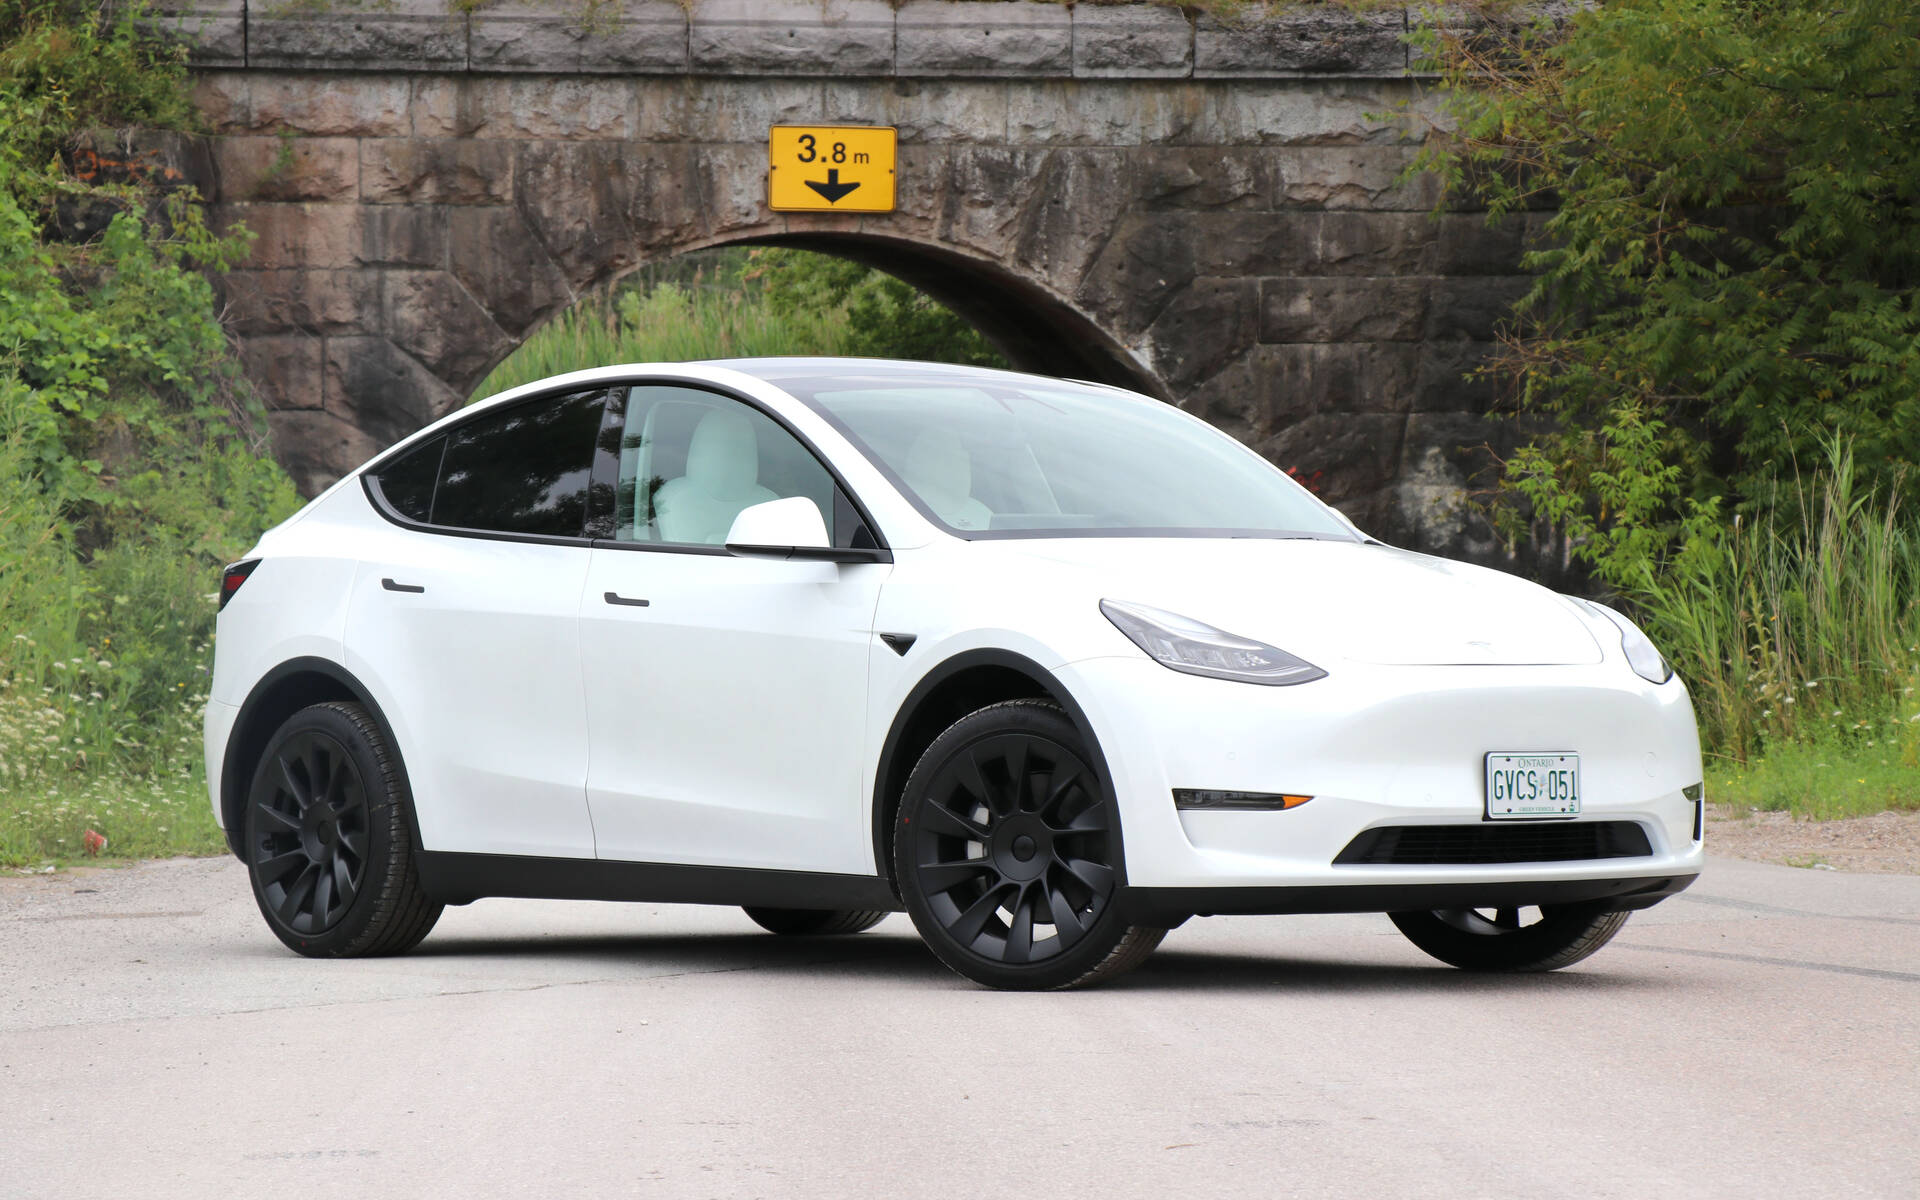 2020 Tesla Model Y: Already Ahead of its Future Rivals - The Car Guide